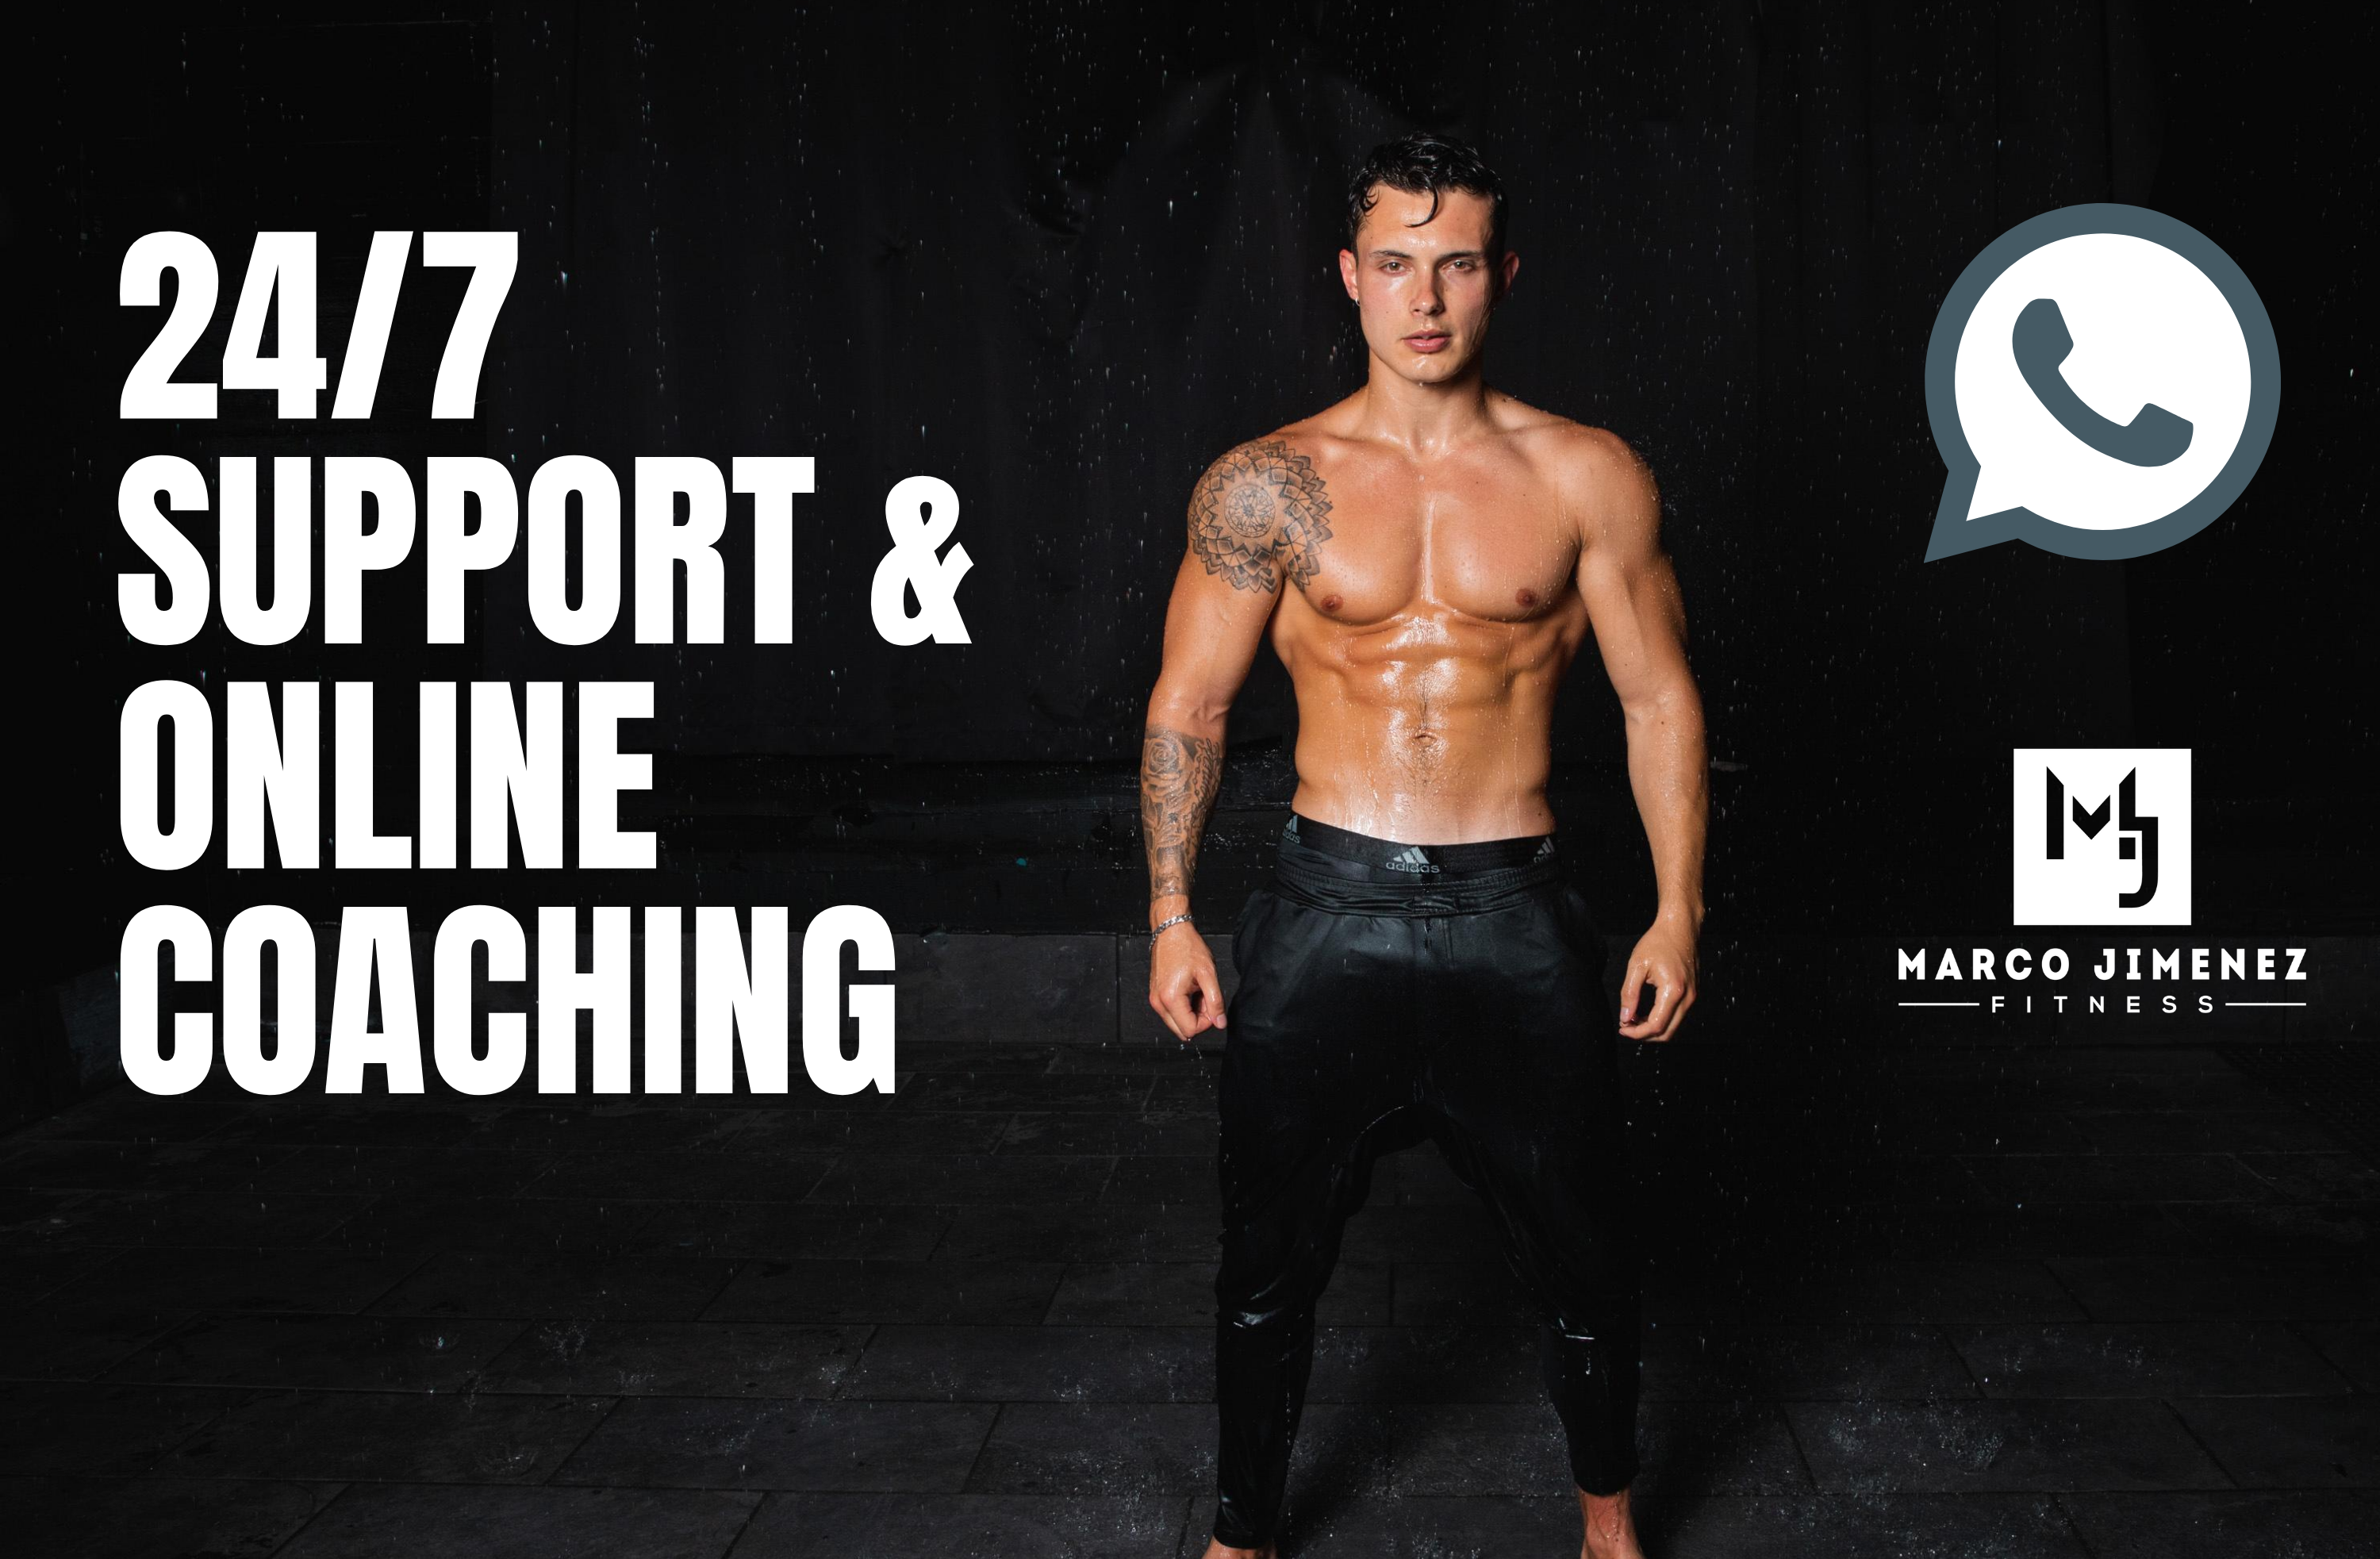 24_7 support & online coaching